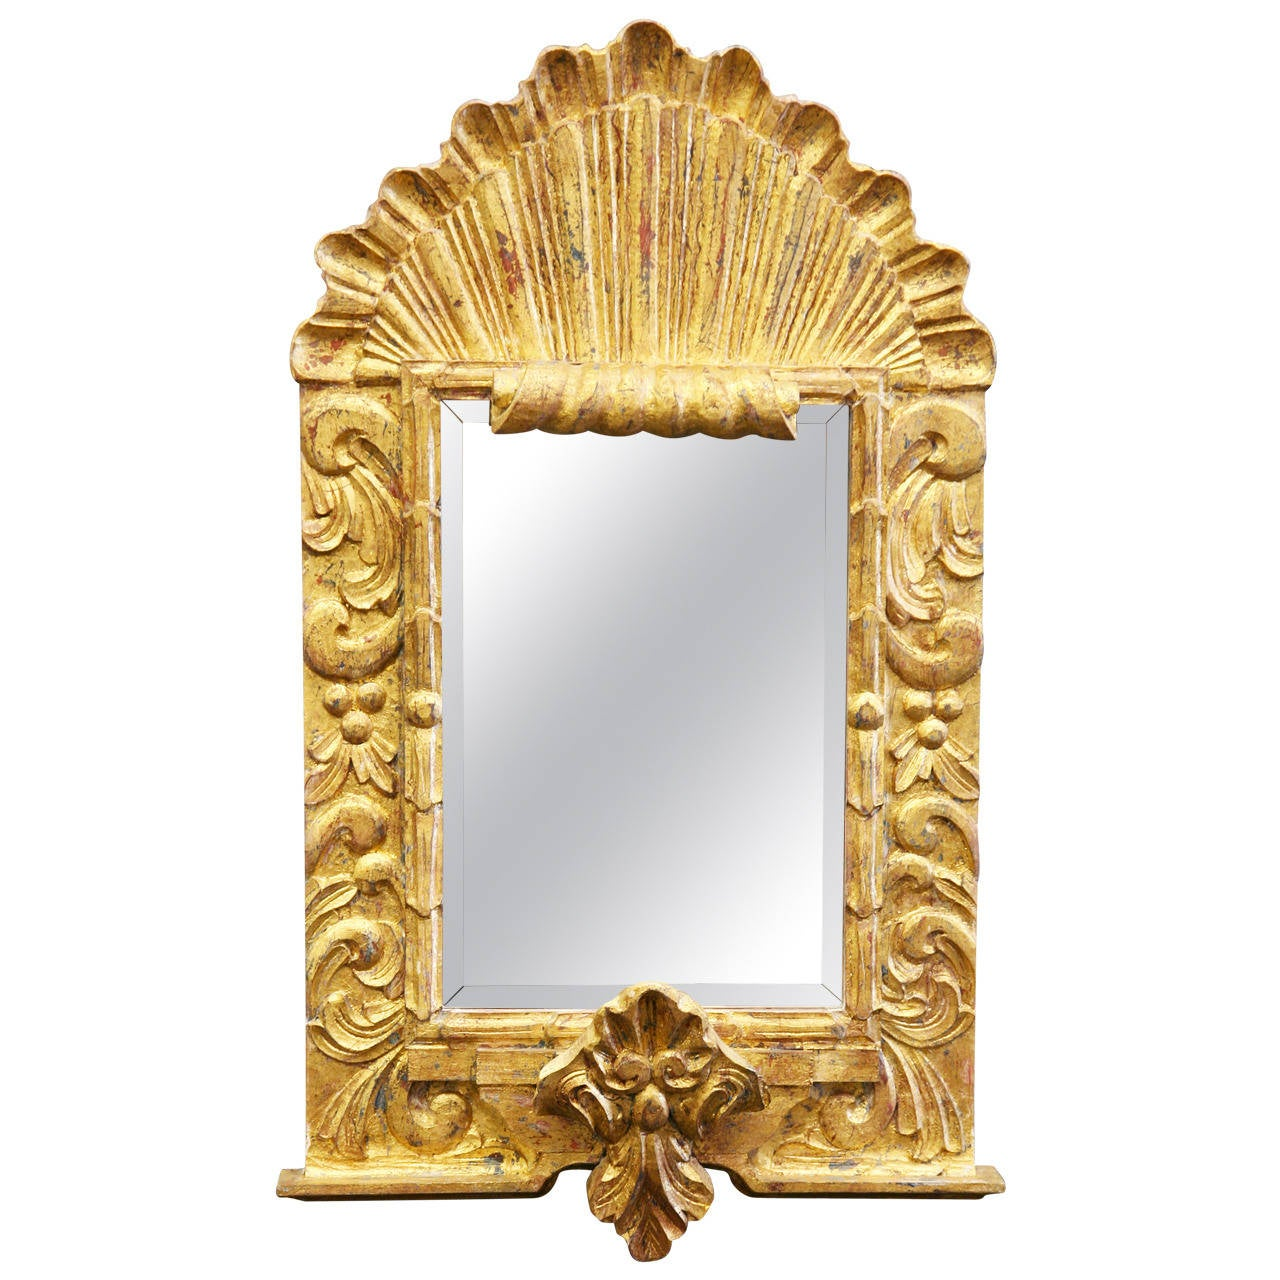 Antique style gilded mirror at 1stdibs for Antique style wall mirror